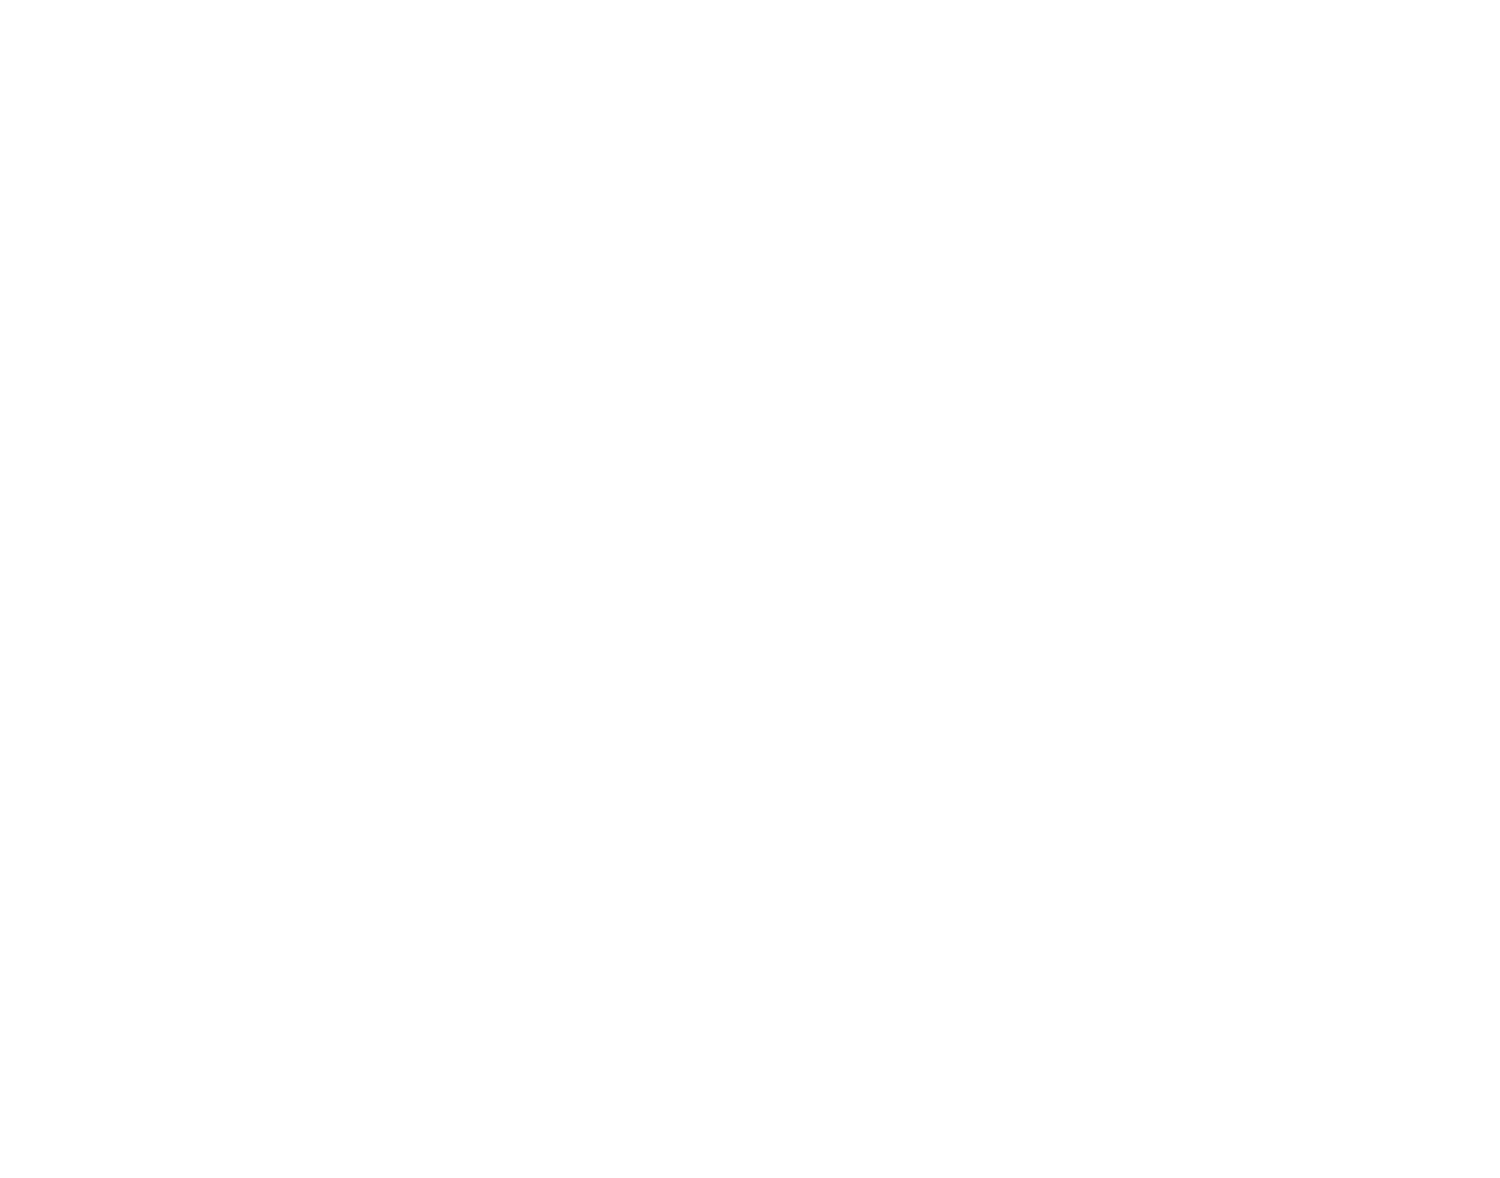 Showplace Productions